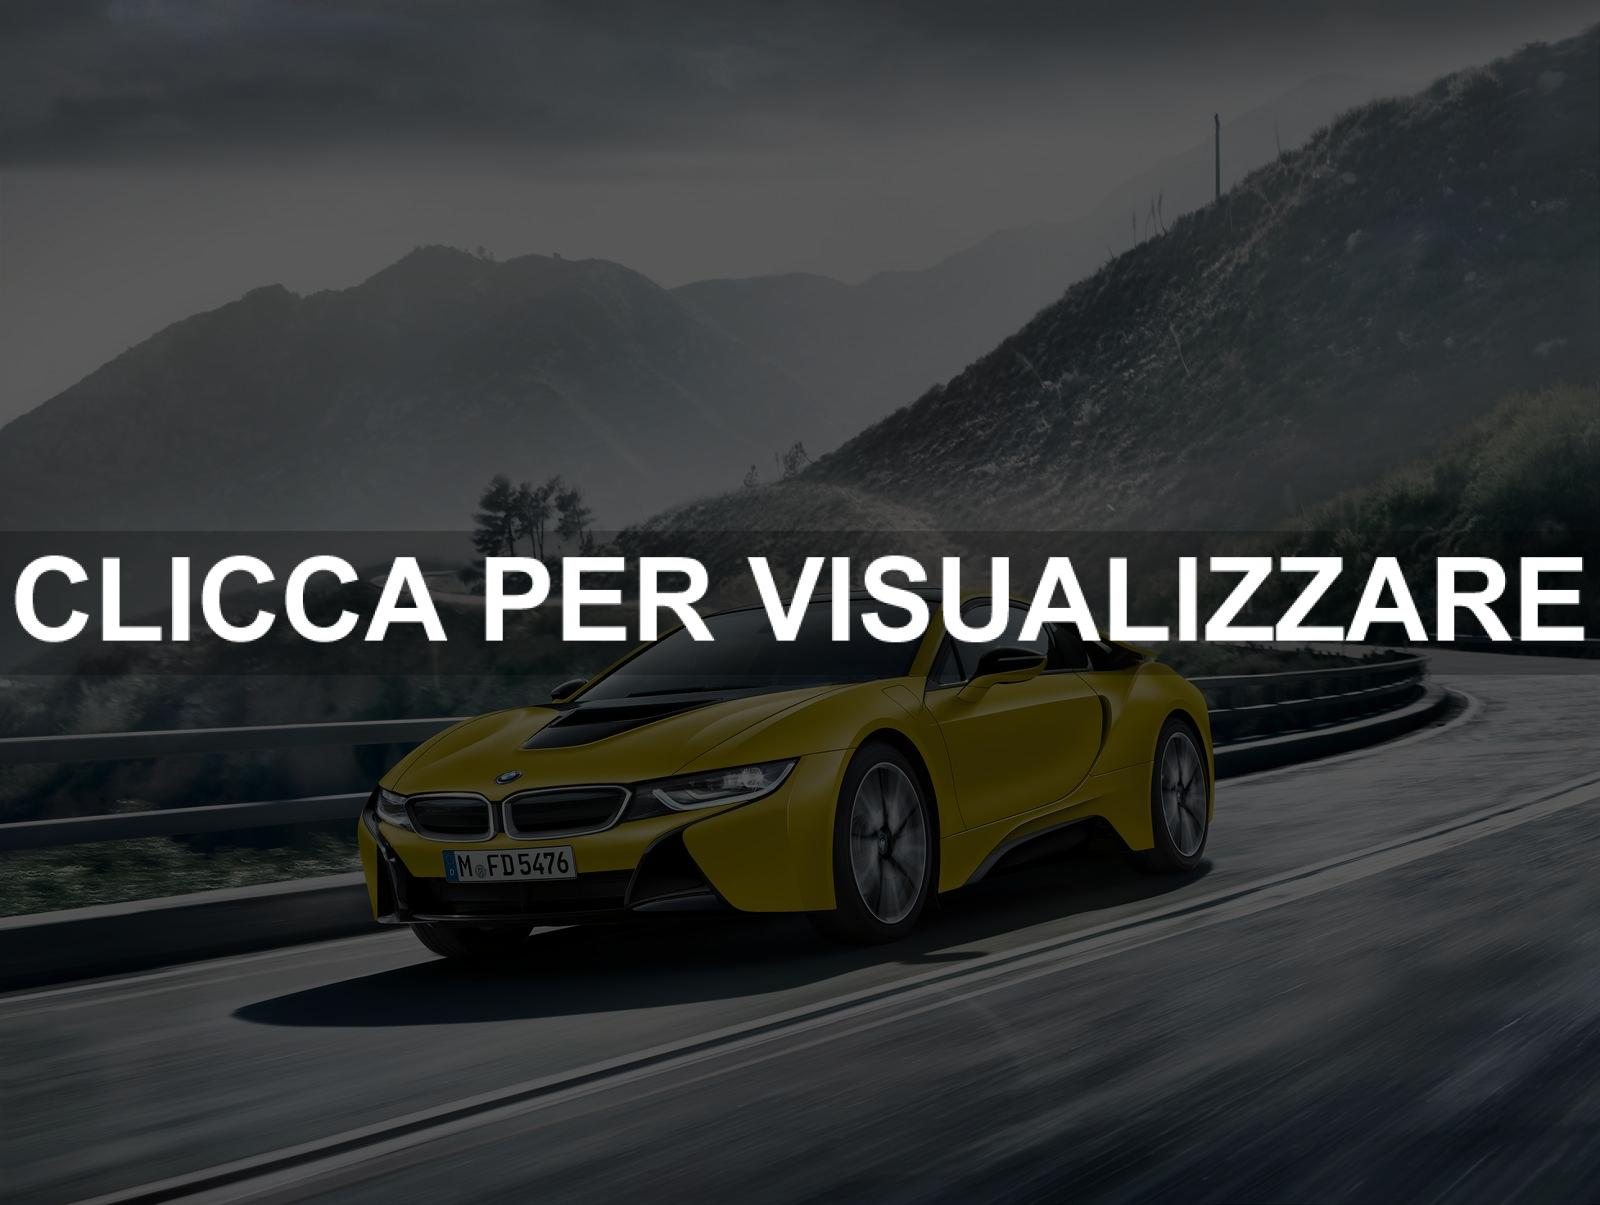 Immagini nuova BMW ibrida i8 Protonic Frozen Yellow Edition 2017